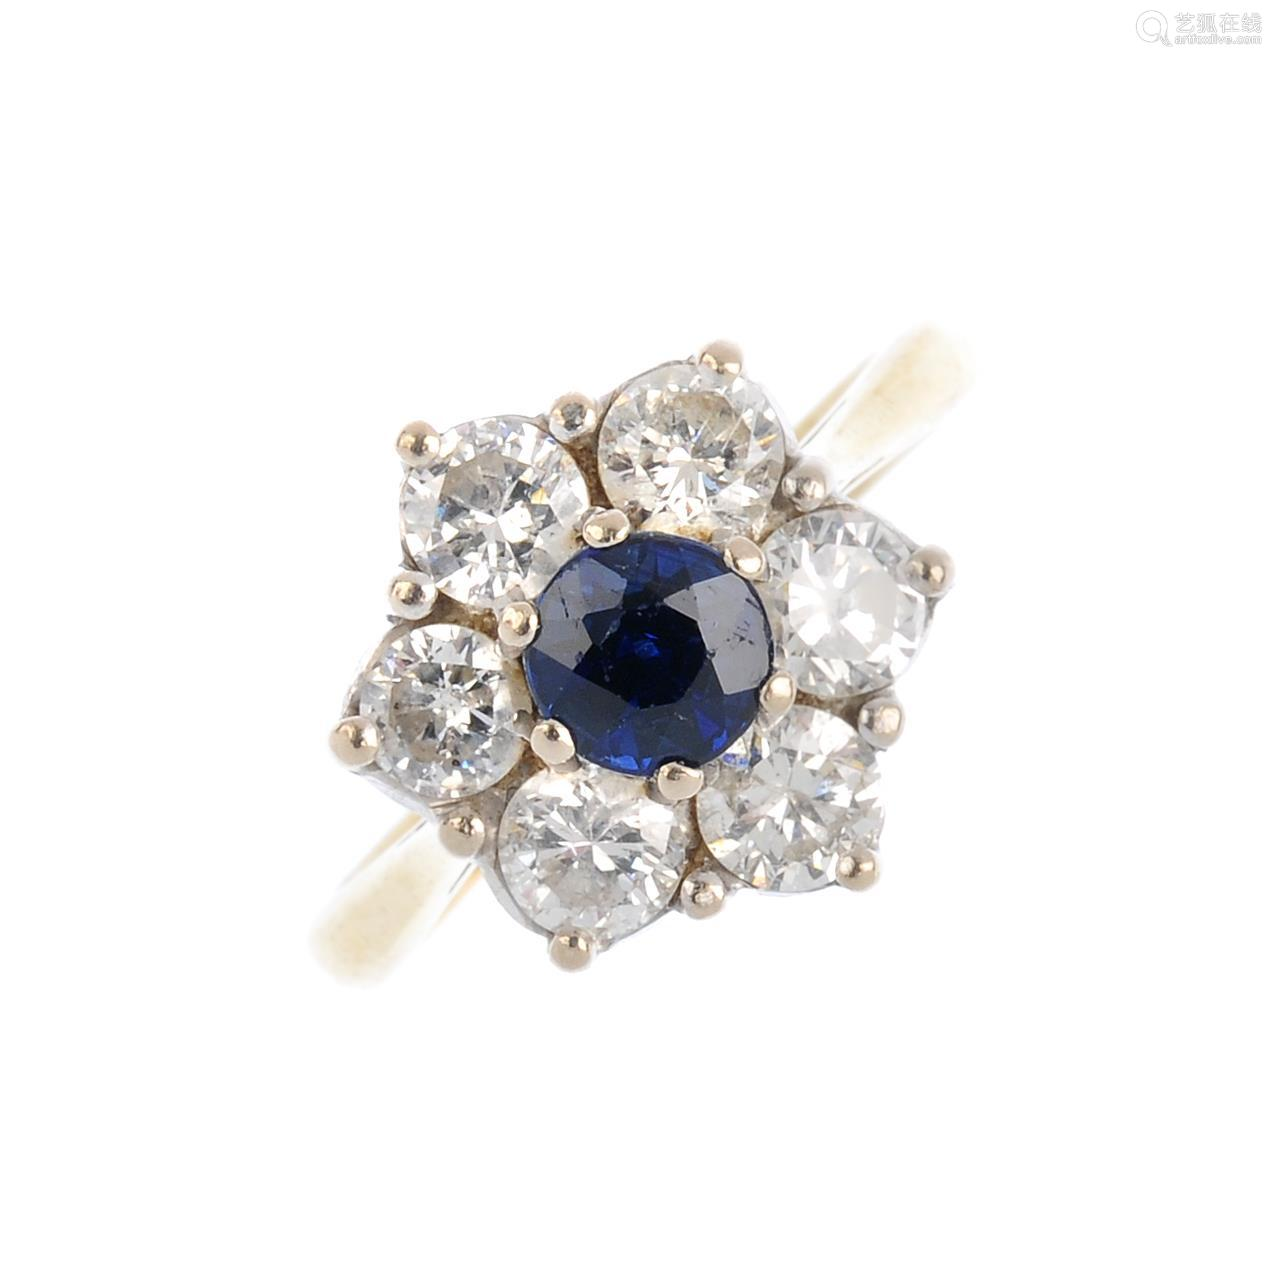 An 18ct gold sapphire and diamond cluster ring. The circular-shape sapphire, with brilliant-cut